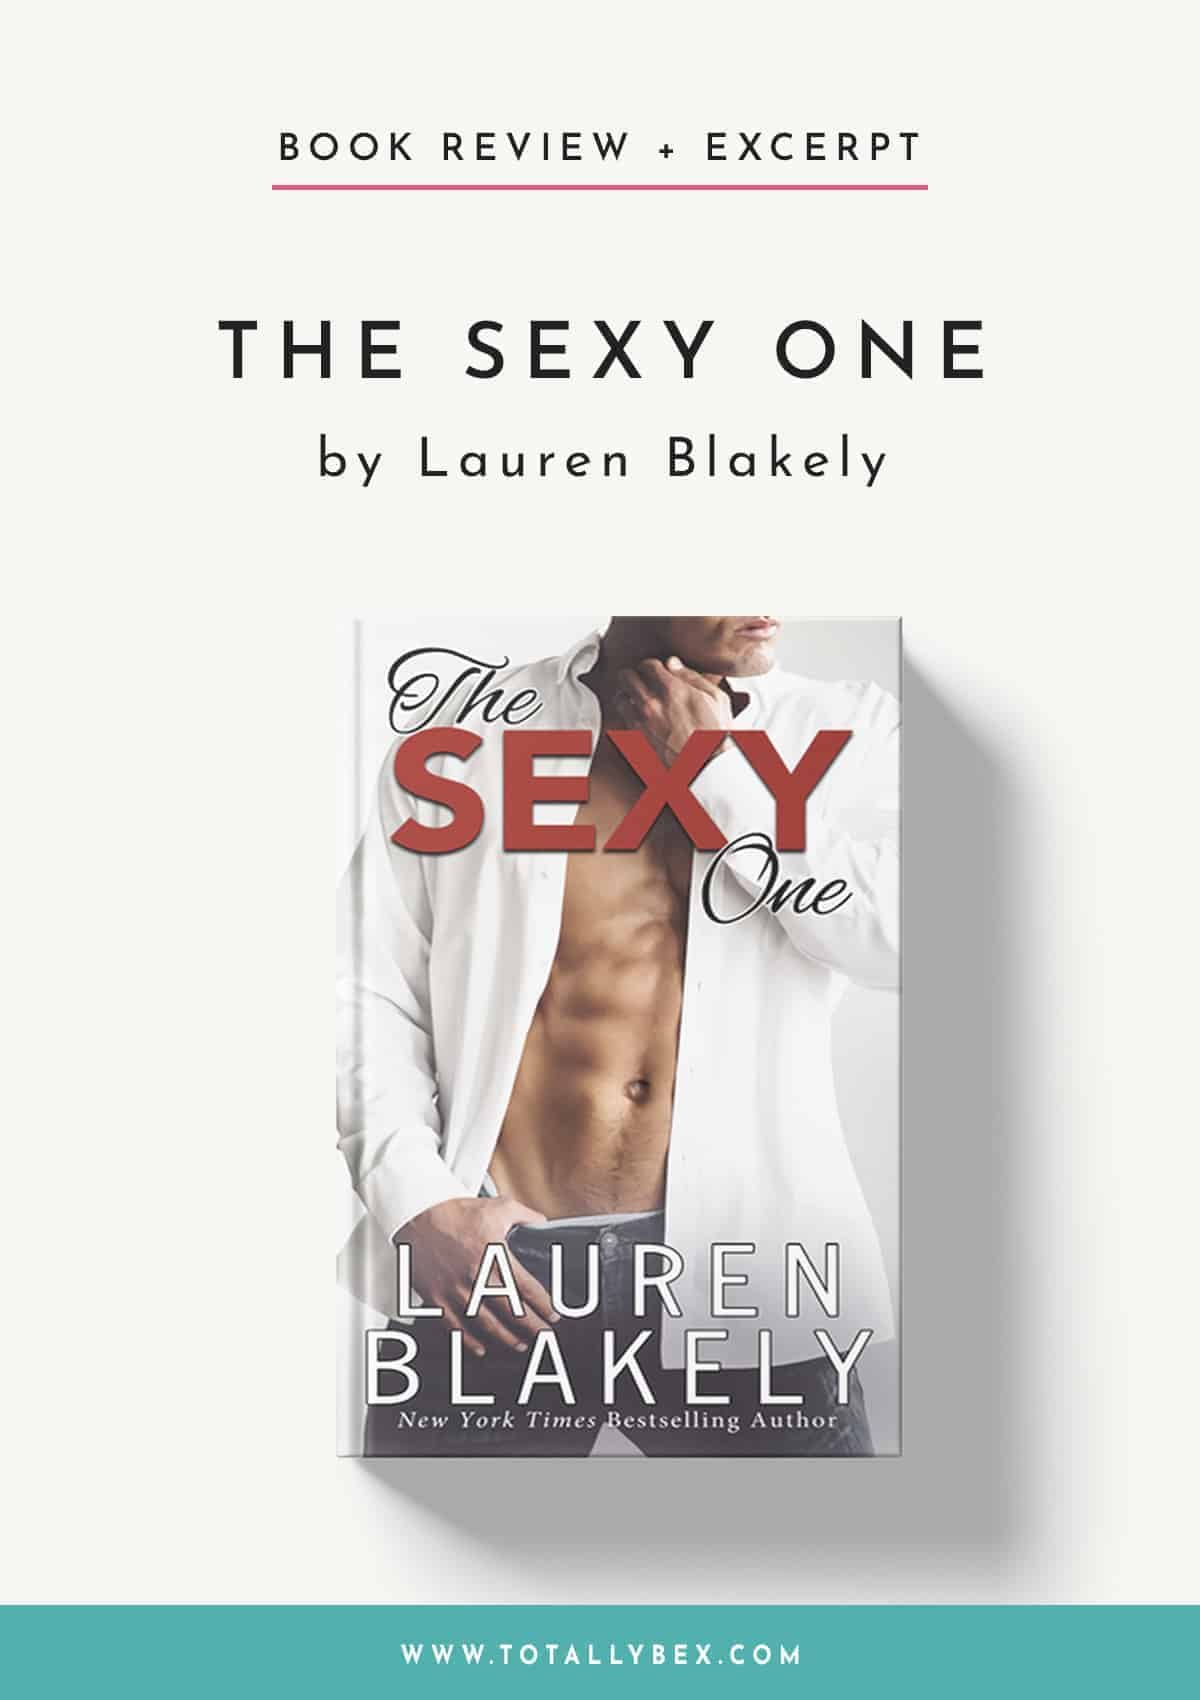 The Sexy One by Lauren Blakely-Book Review+Excerpt